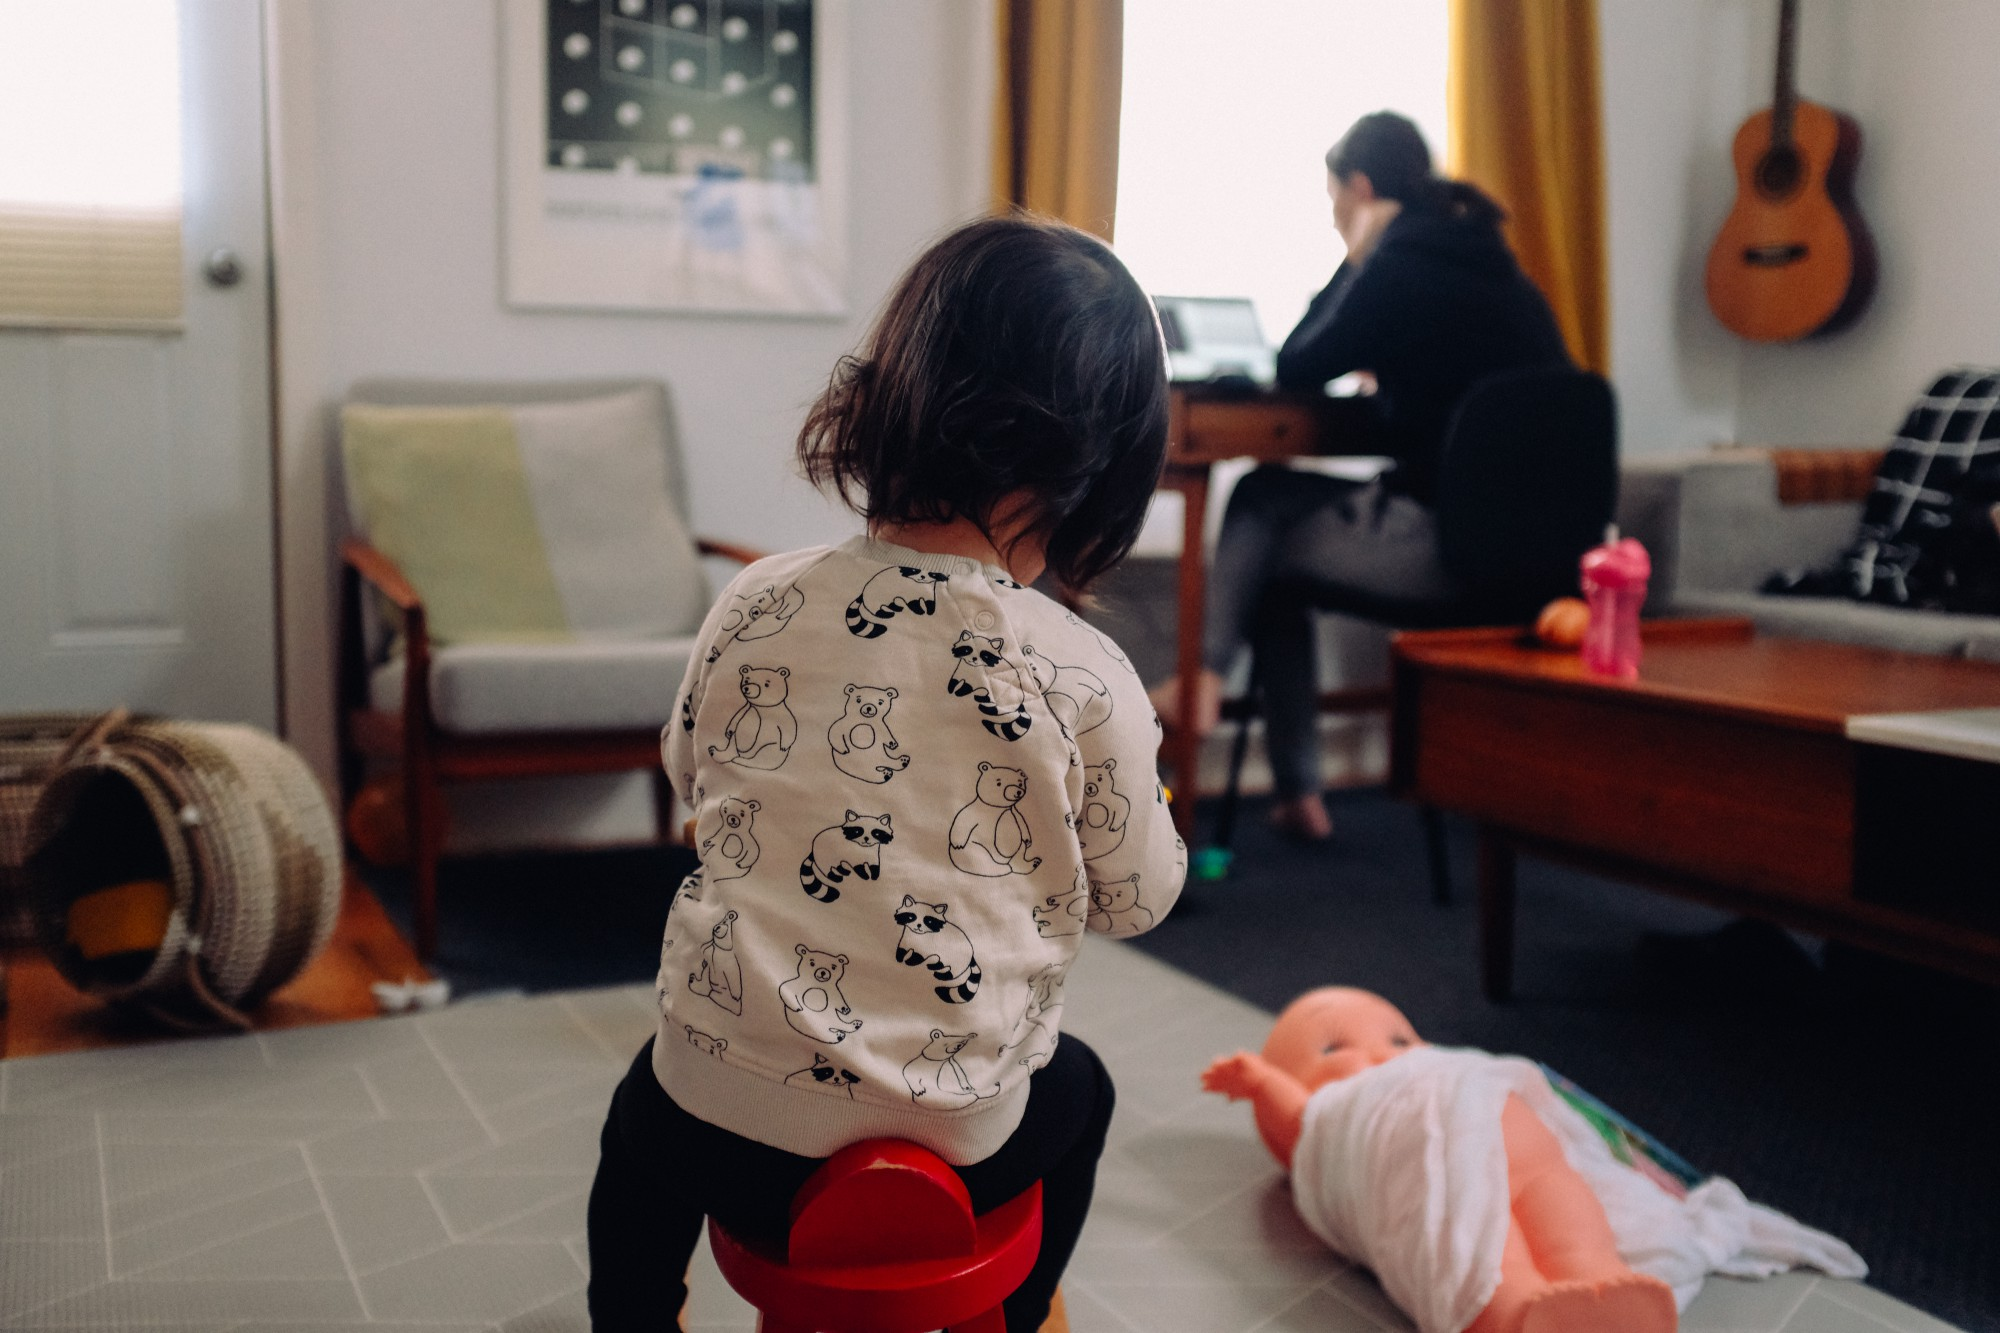 working from home with children. Top tips to keep them occupied